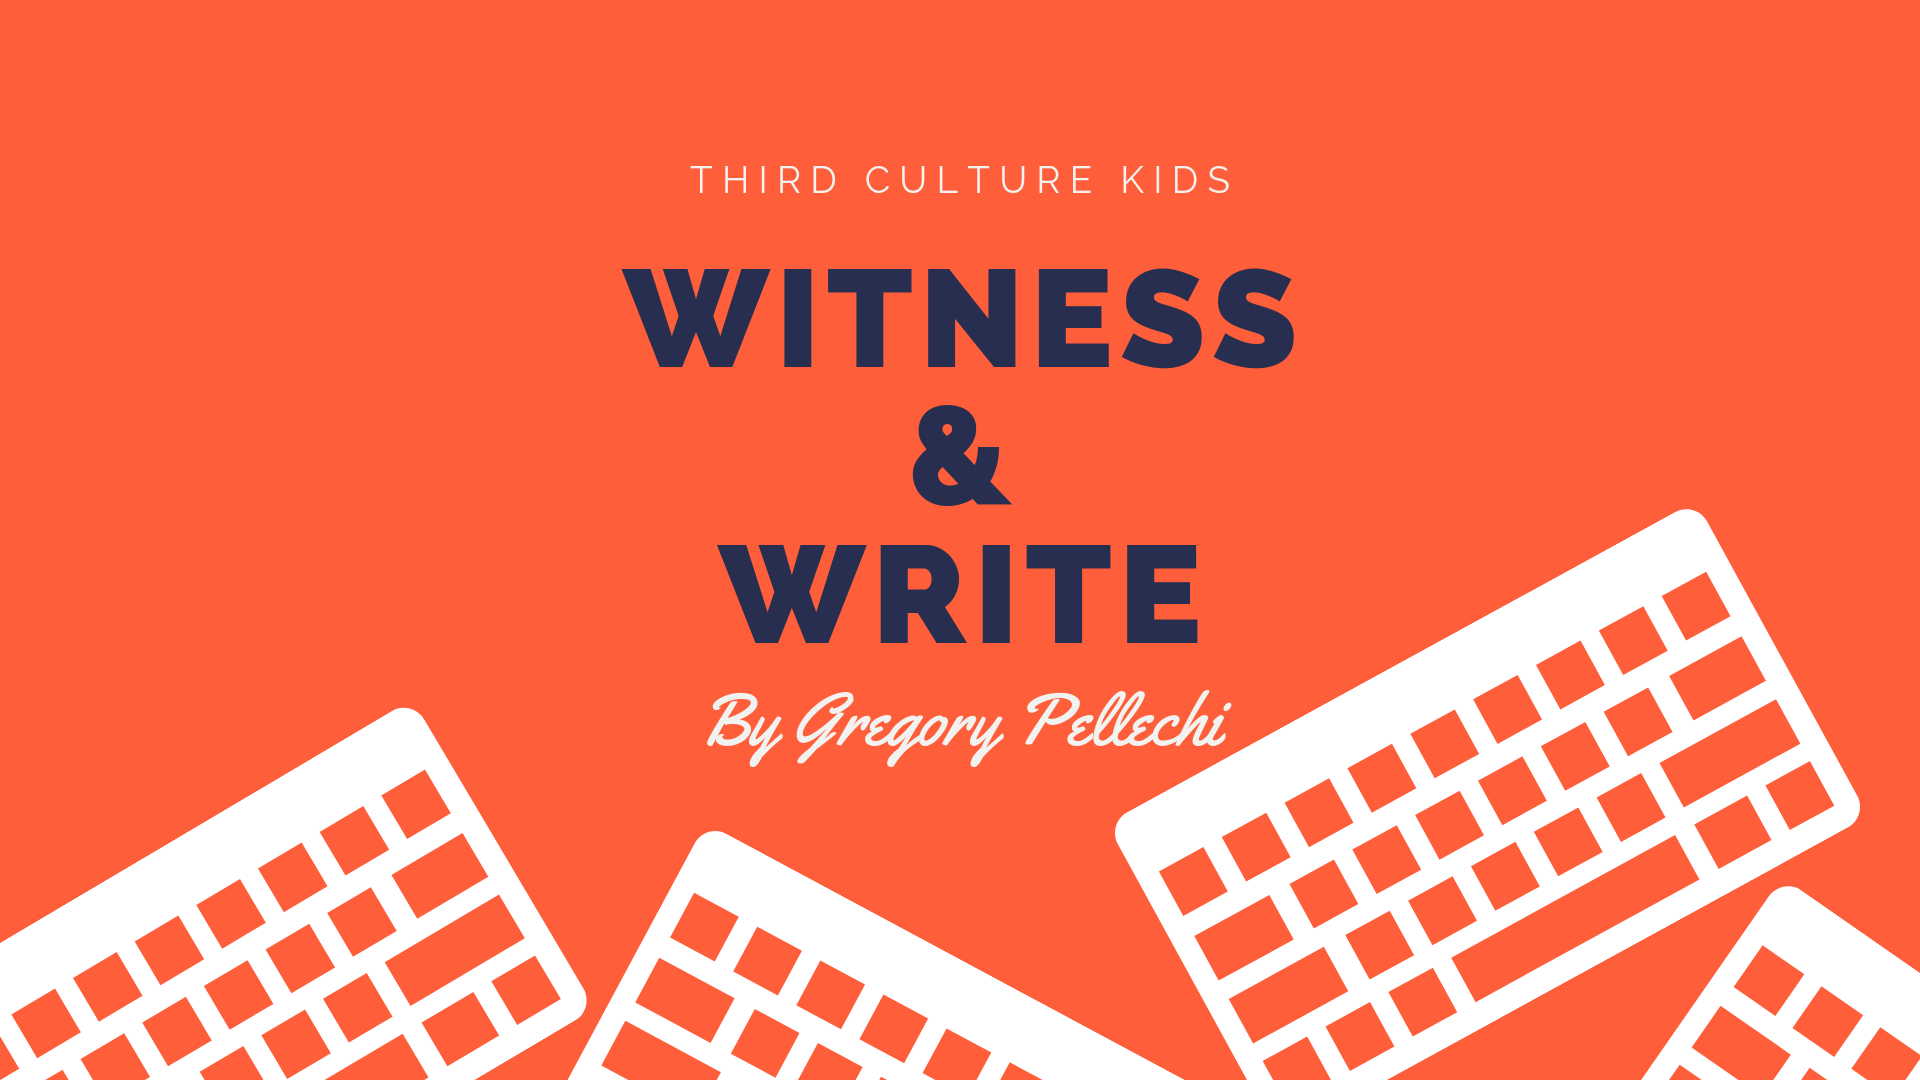 Witness & Write